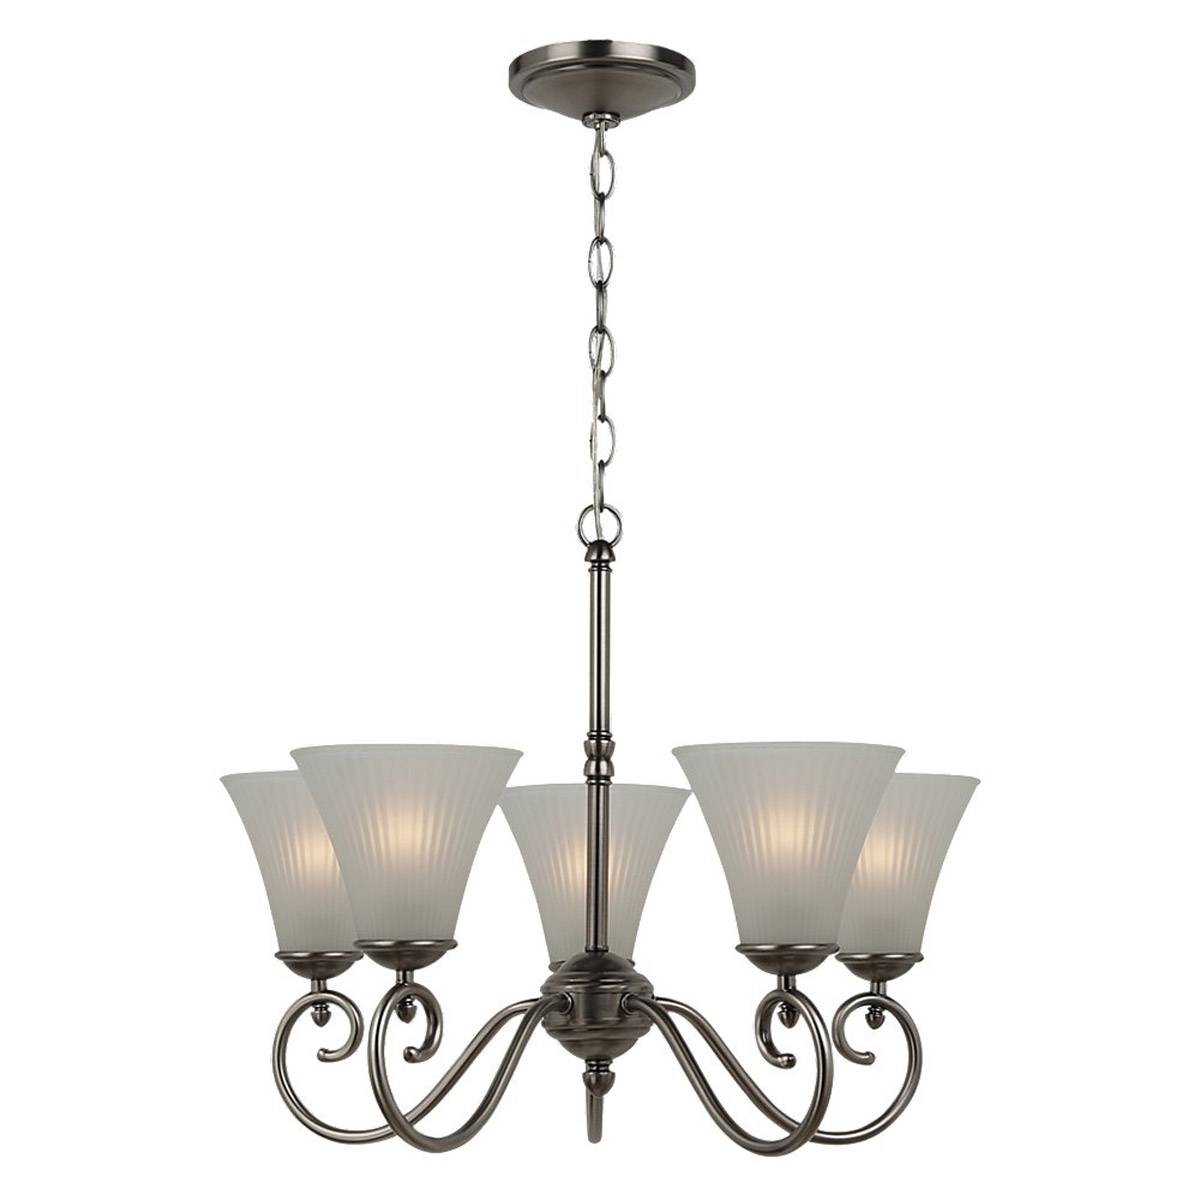 Sea Gull Lighting Joliet 5 Light Chandelier in Antique Brushed Nickel 31945-965